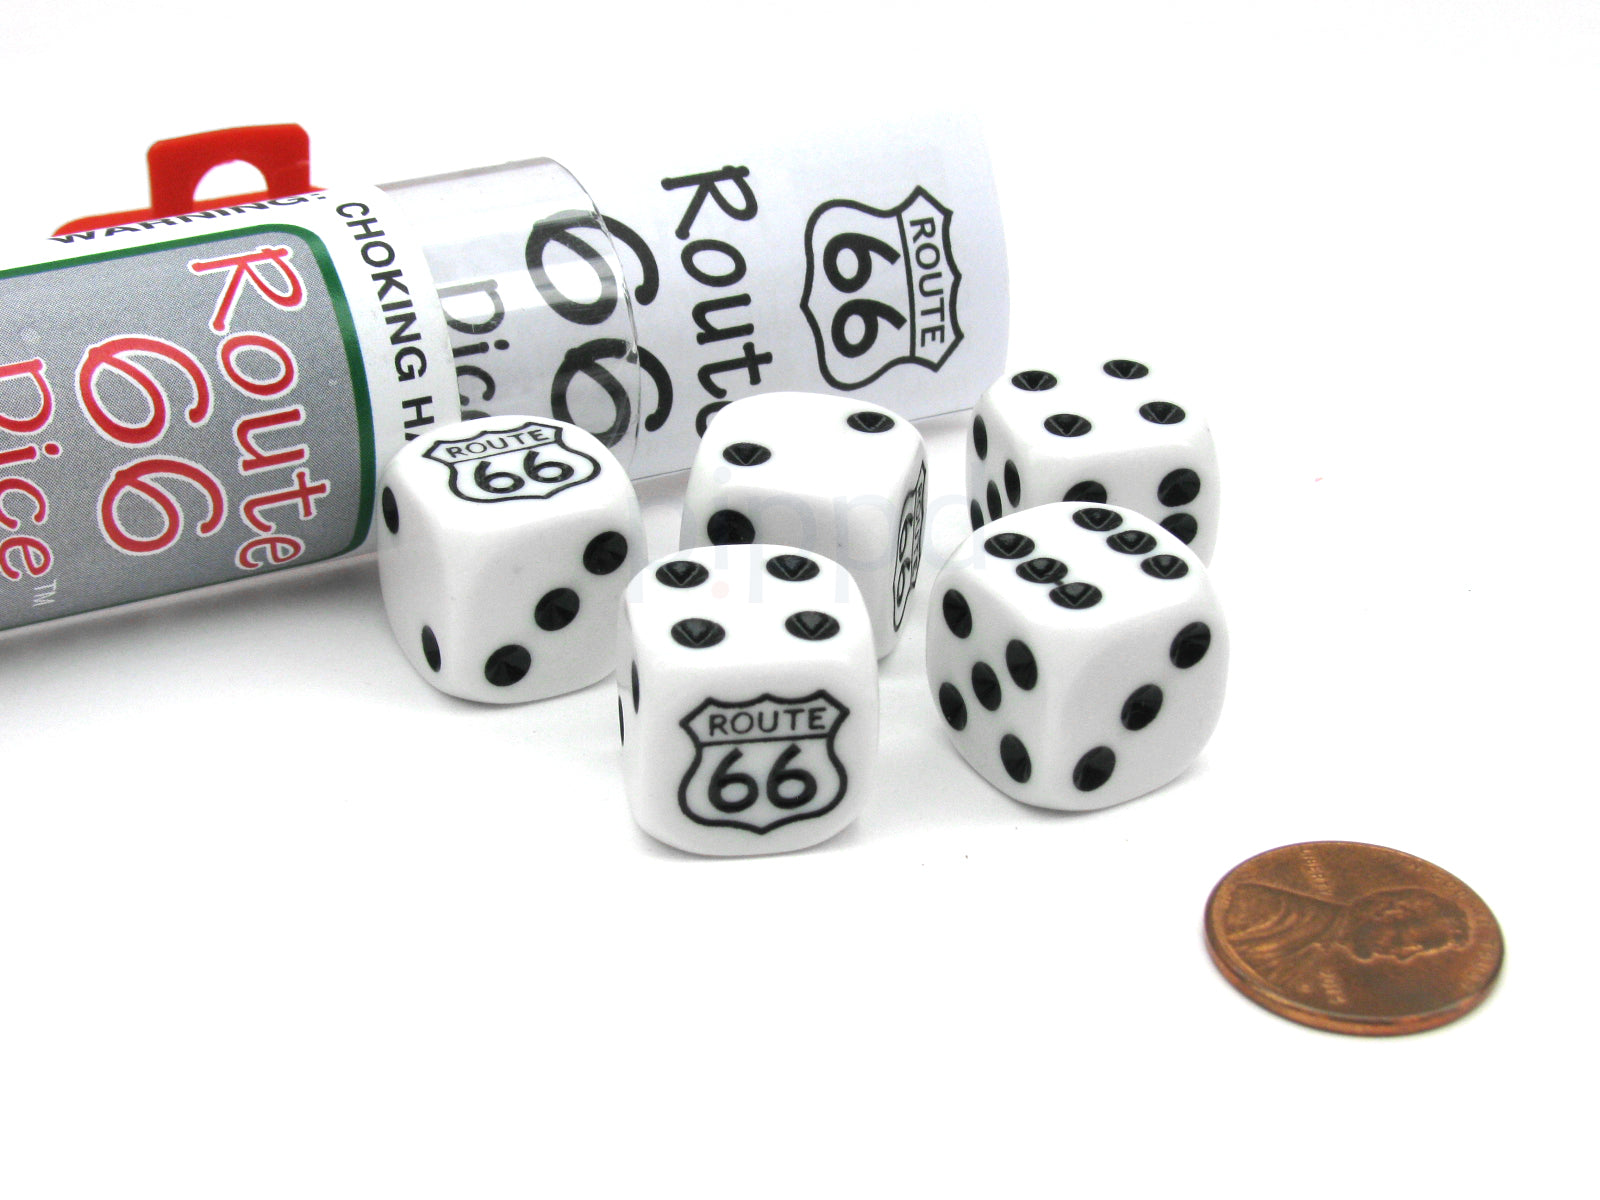 Route 66 Dice Game with 5 Dice Travel Tube and Gaming Instructions